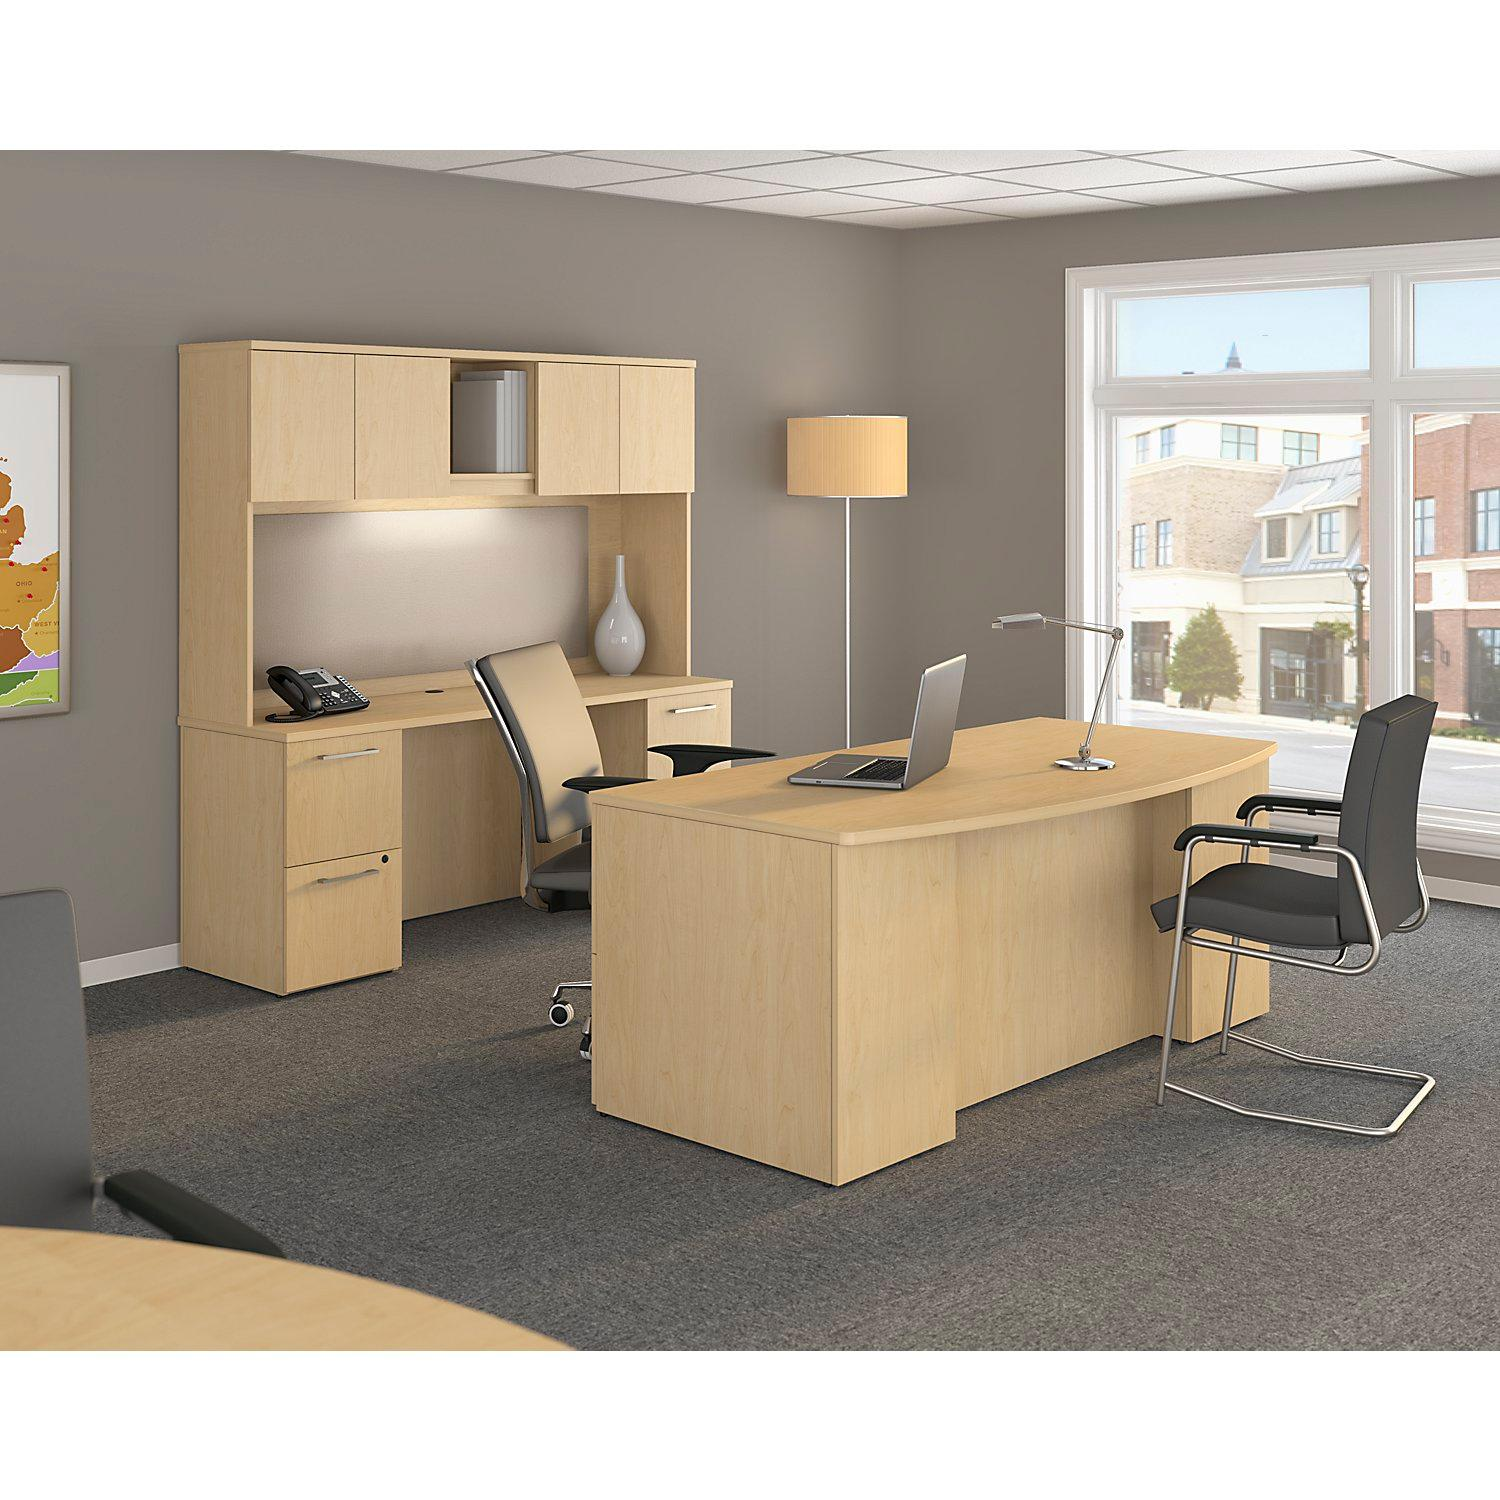 83 Modular Office Furniture Amazon Amazon Bush